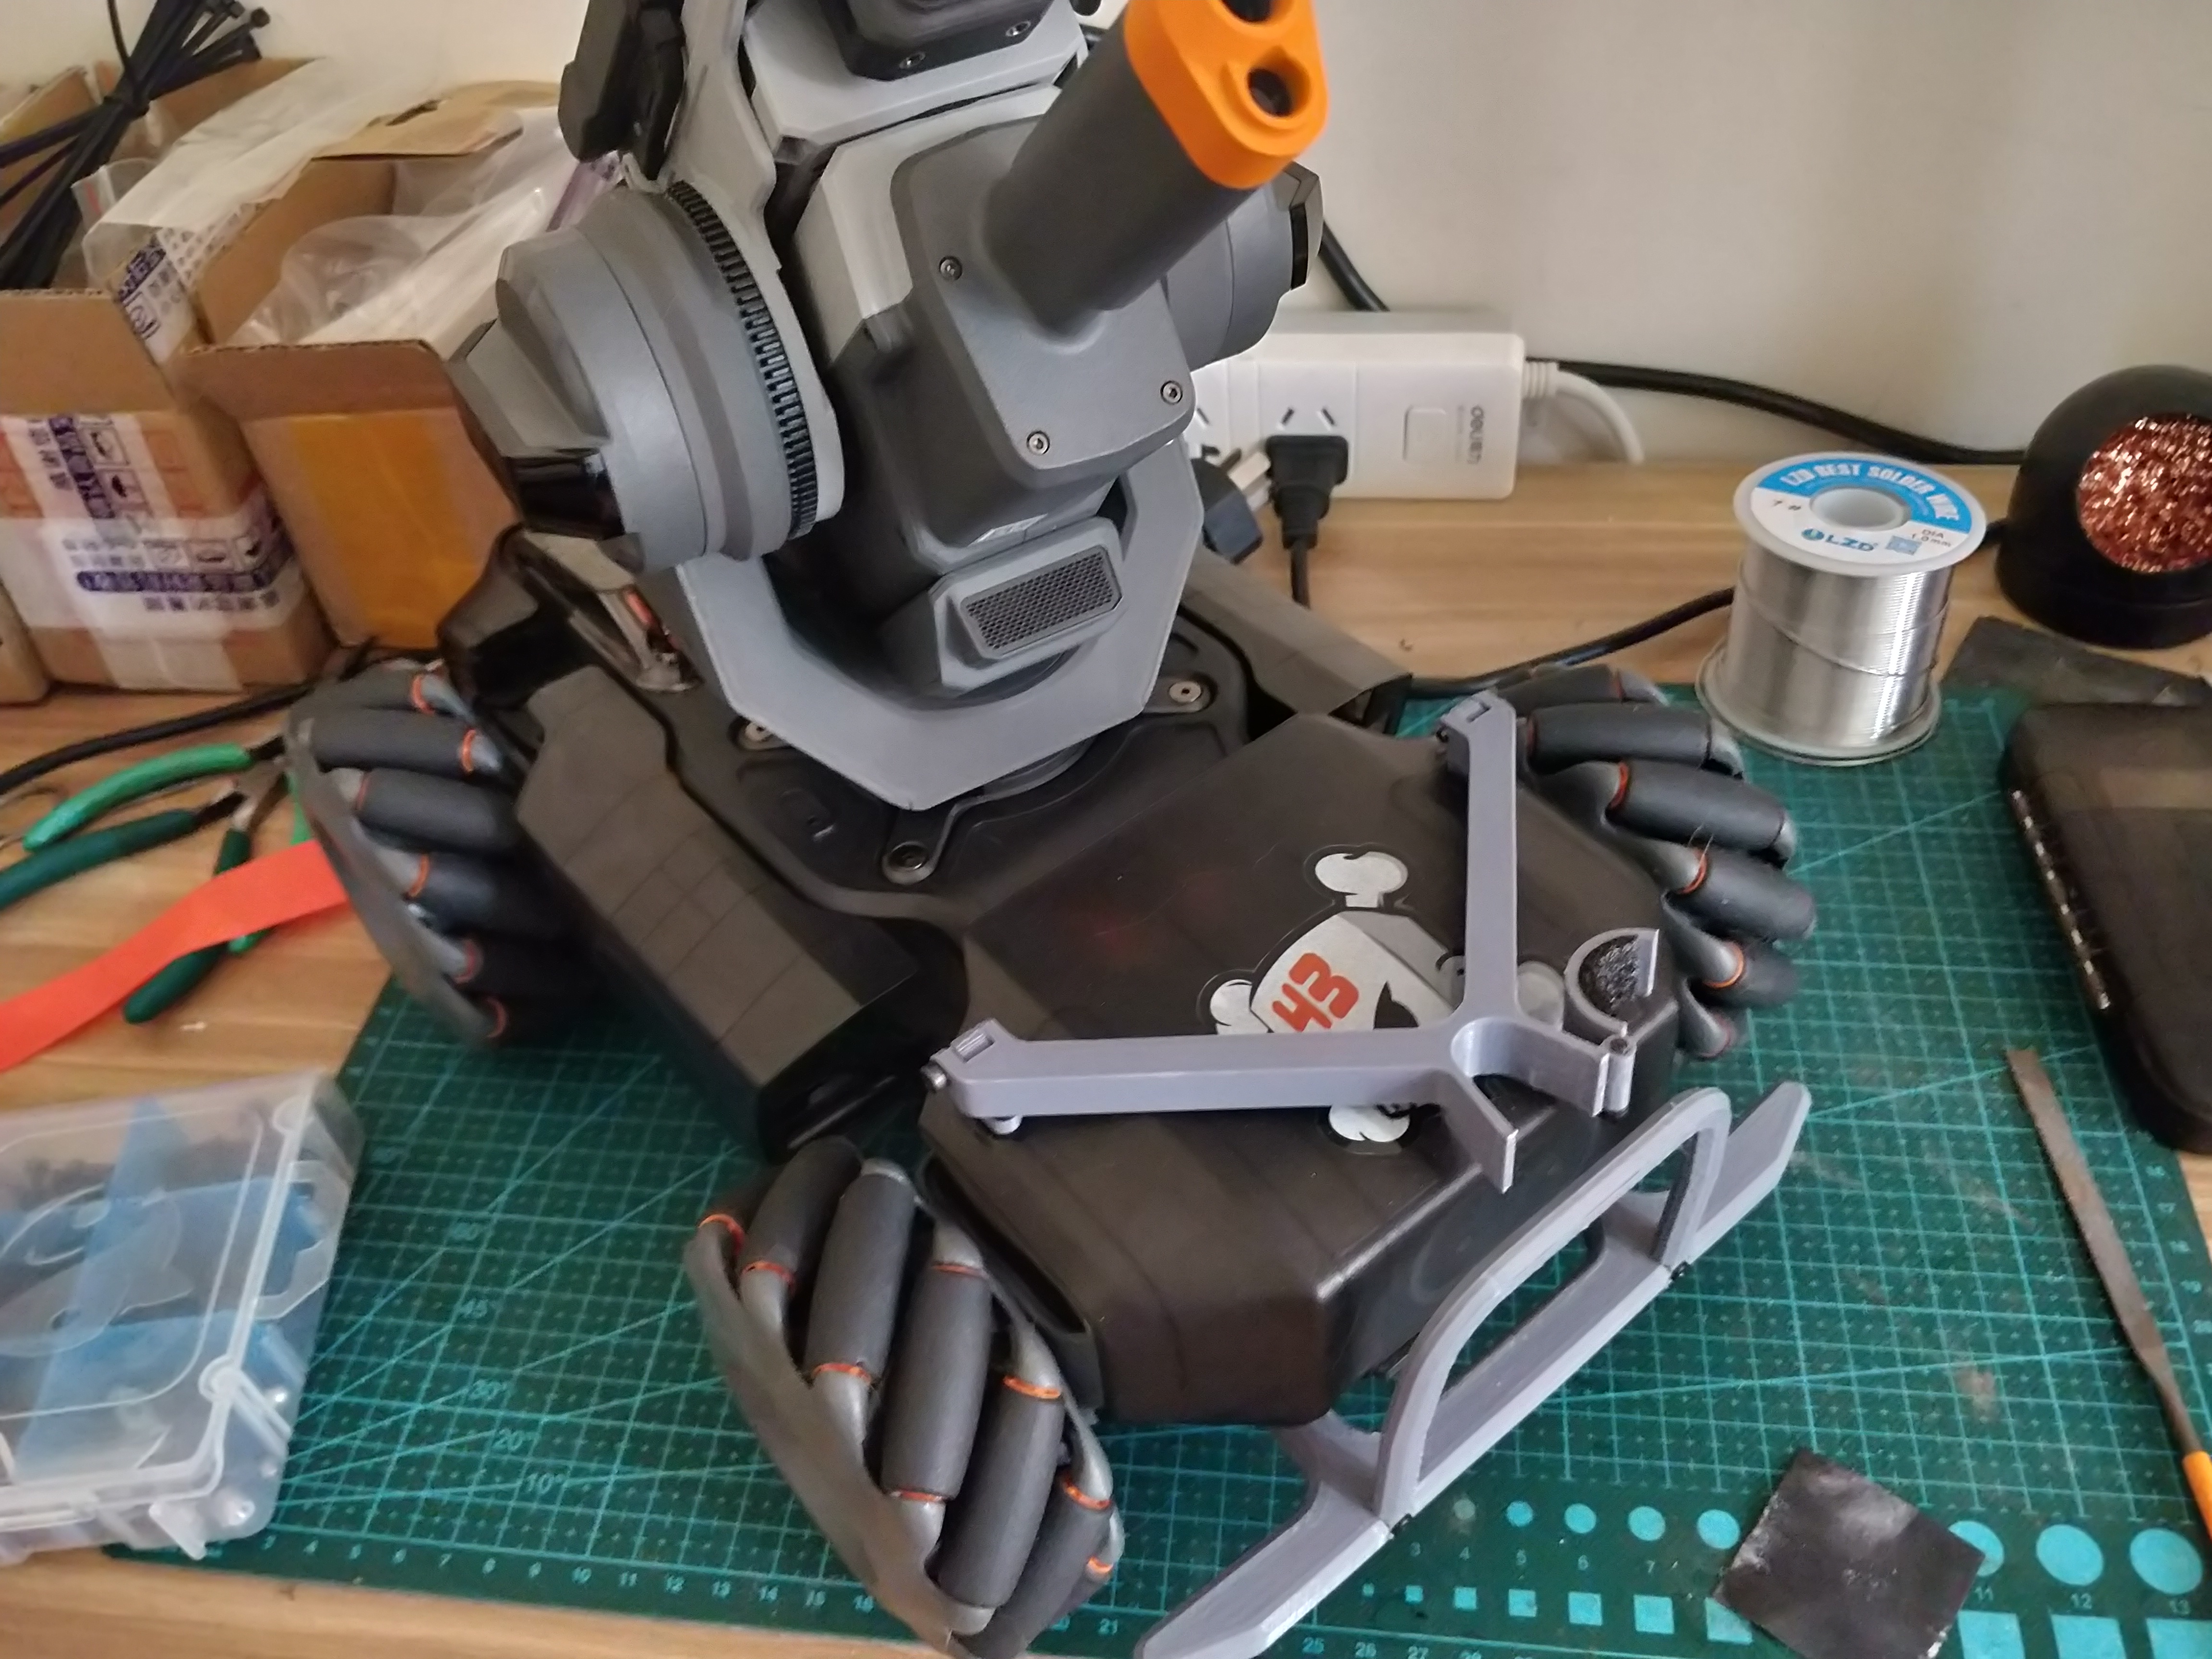 Robomaster S1 cannon holder